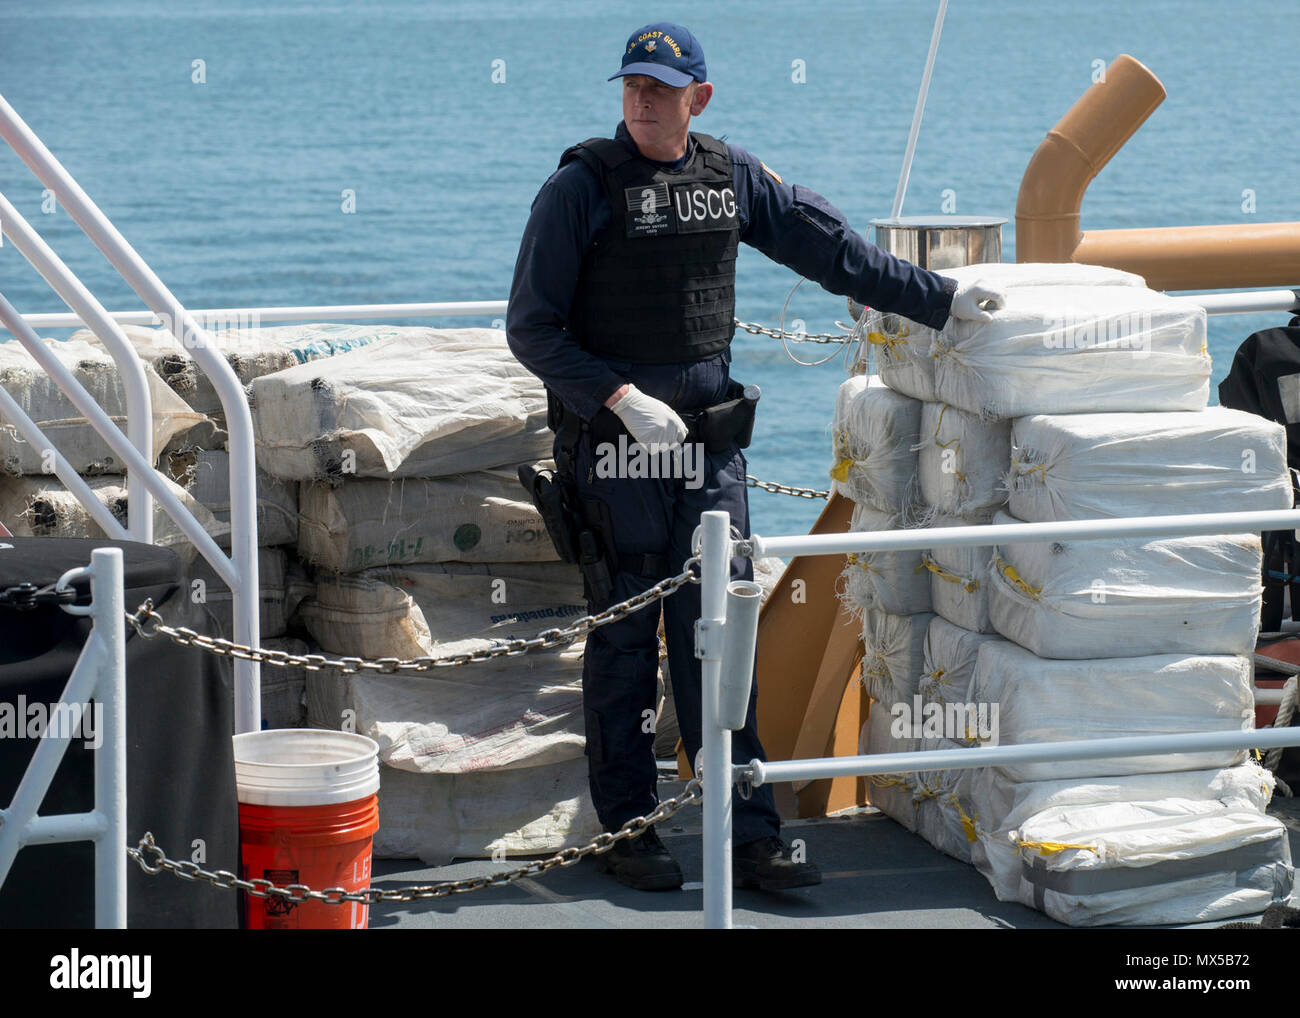 More than 3,825 pounds of cocaine await transfer to federal agents Wednesday, May 3, 2017 at Coast Guard Sector St. Petersburg, Florida. The contraband was interdicted during four separate cases supporting Operation Martillo, a joint interagency and multi-national collaborative effort among 14 Western Hemisphere and European nations to stop the flow of illicit cargo by Transnational Criminal Organizations. - Stock Image